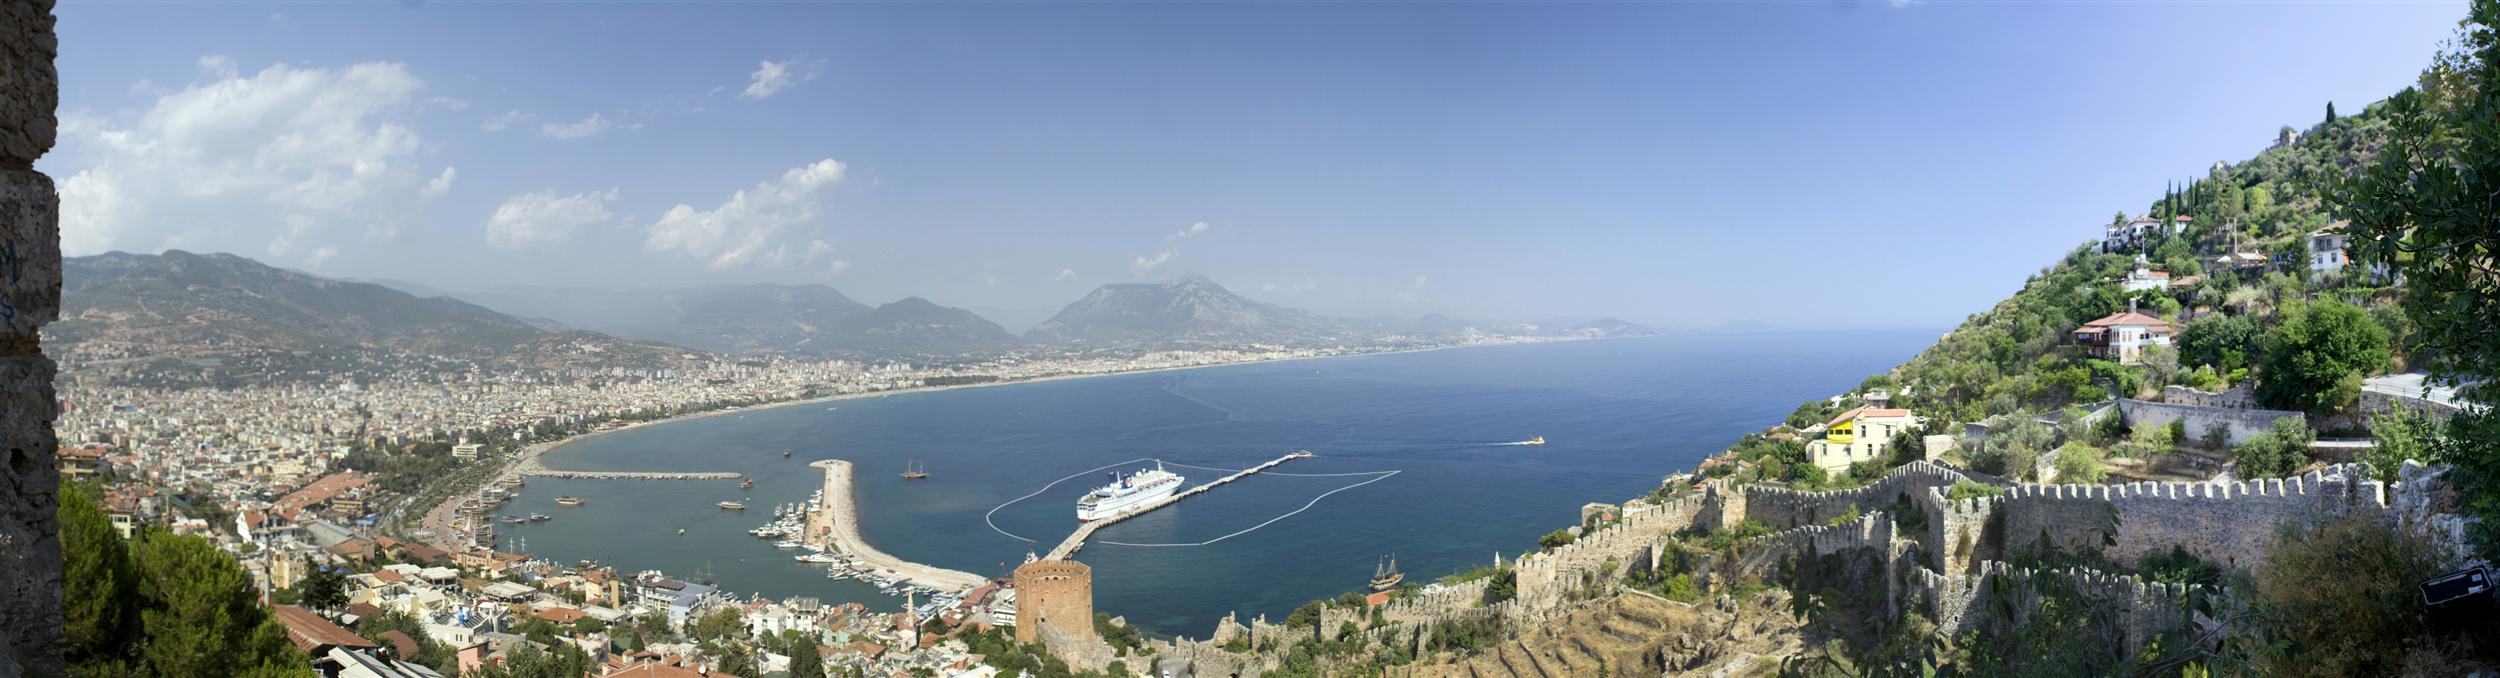 Alanya harbour Panorama